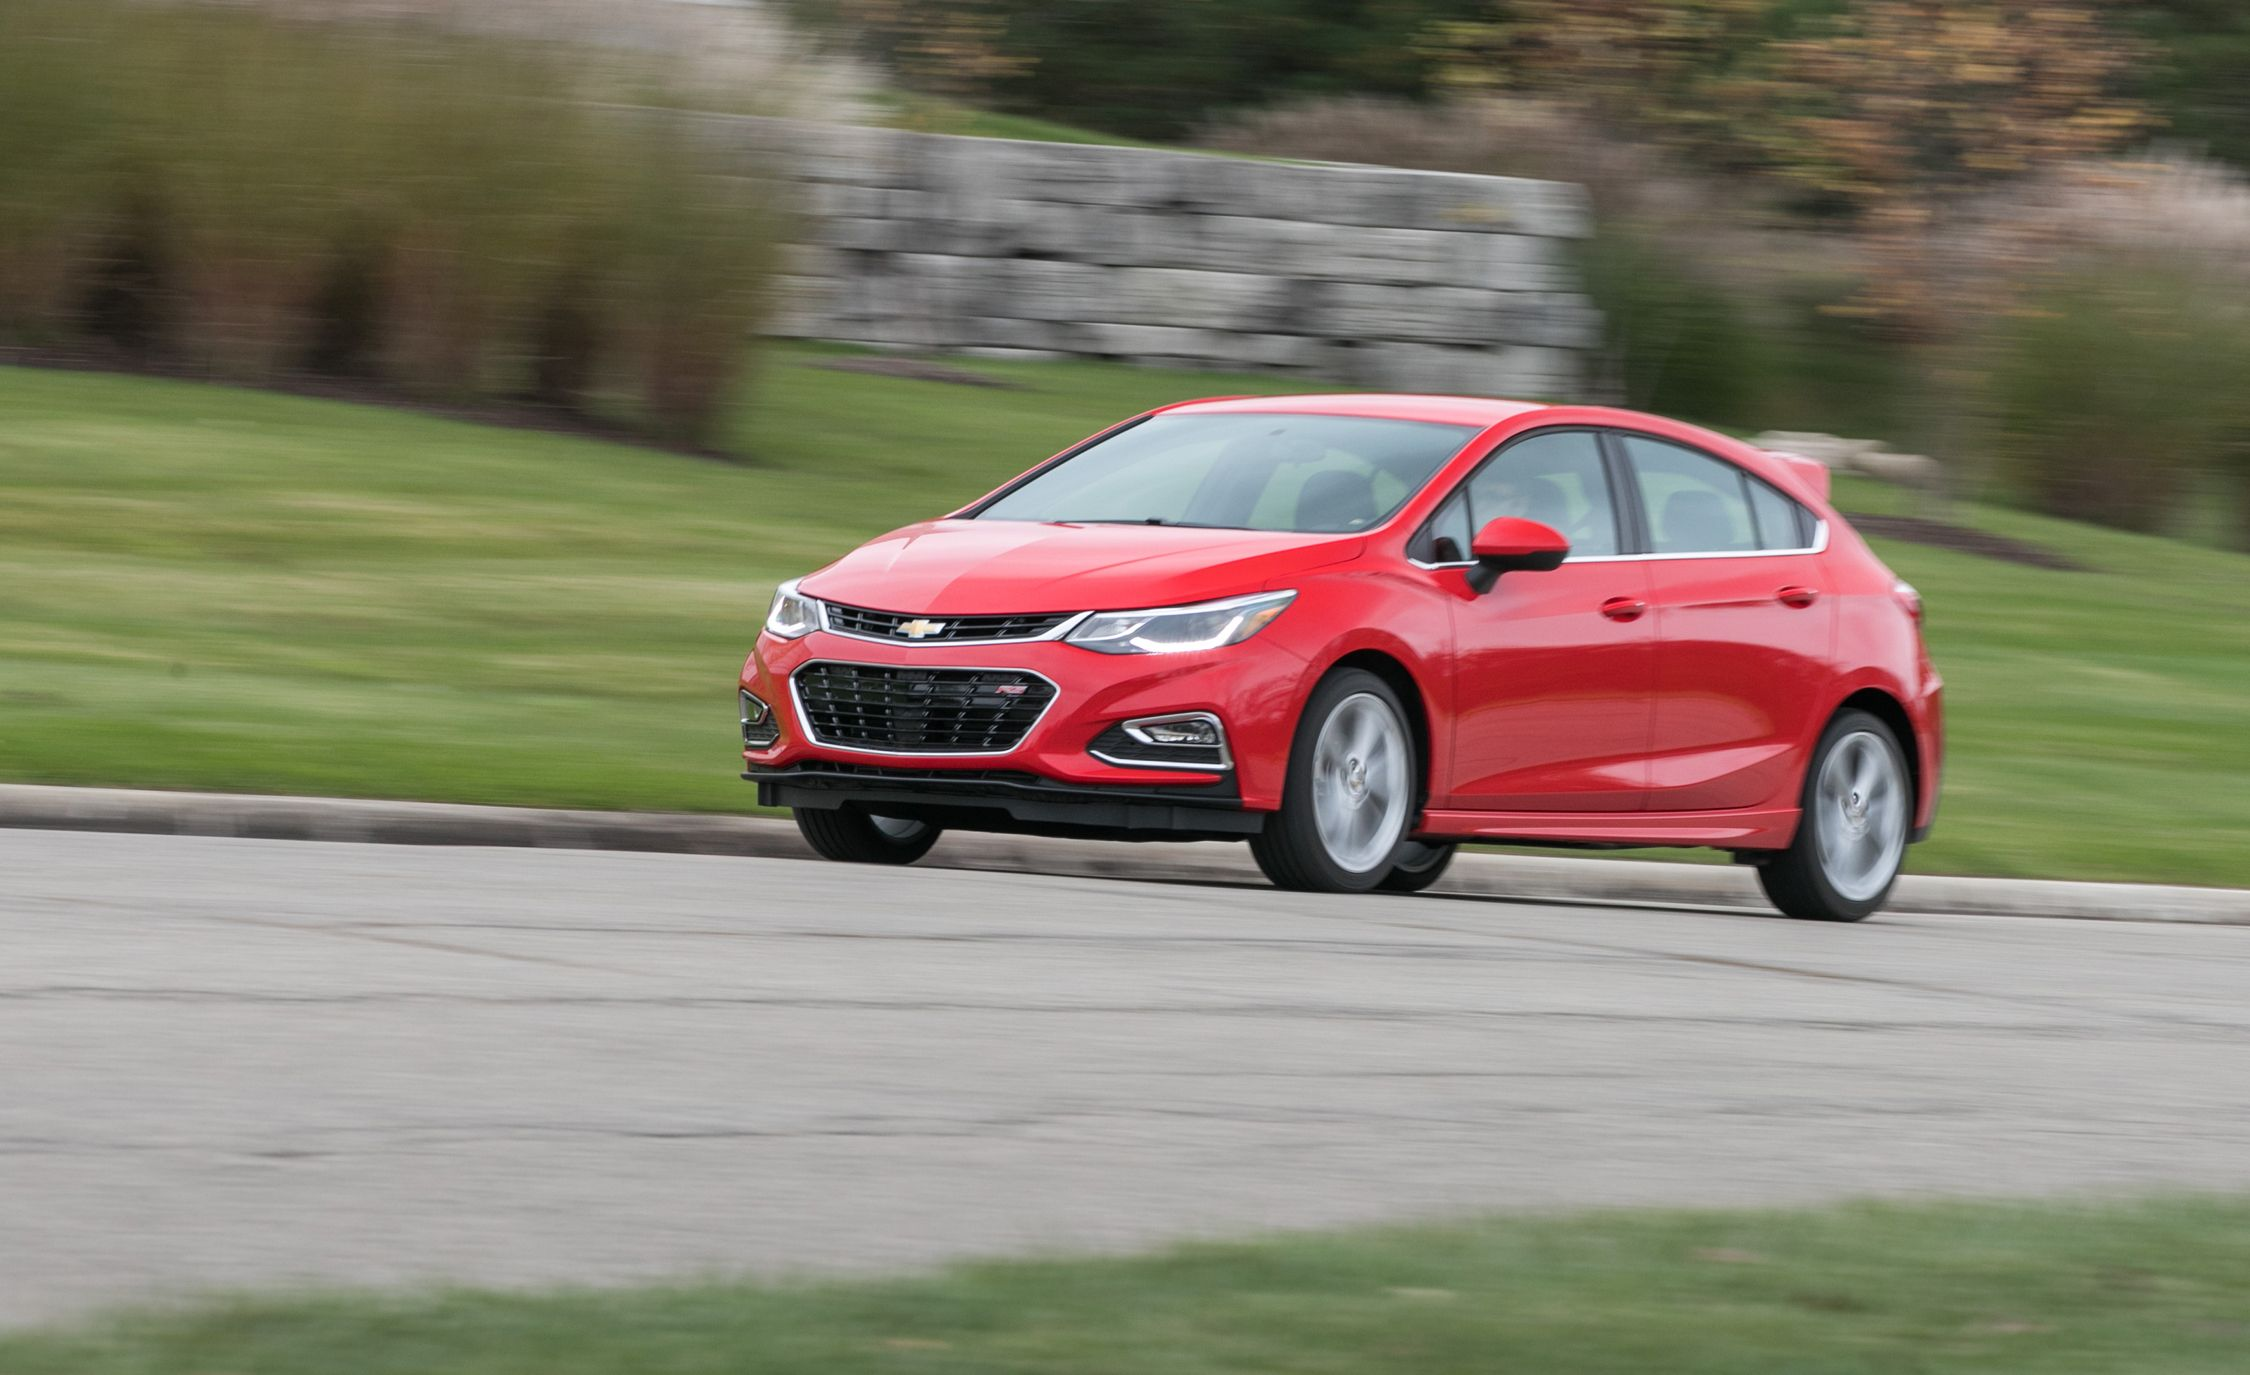 2018 Chevrolet Cruze Sel Hatchback Manual